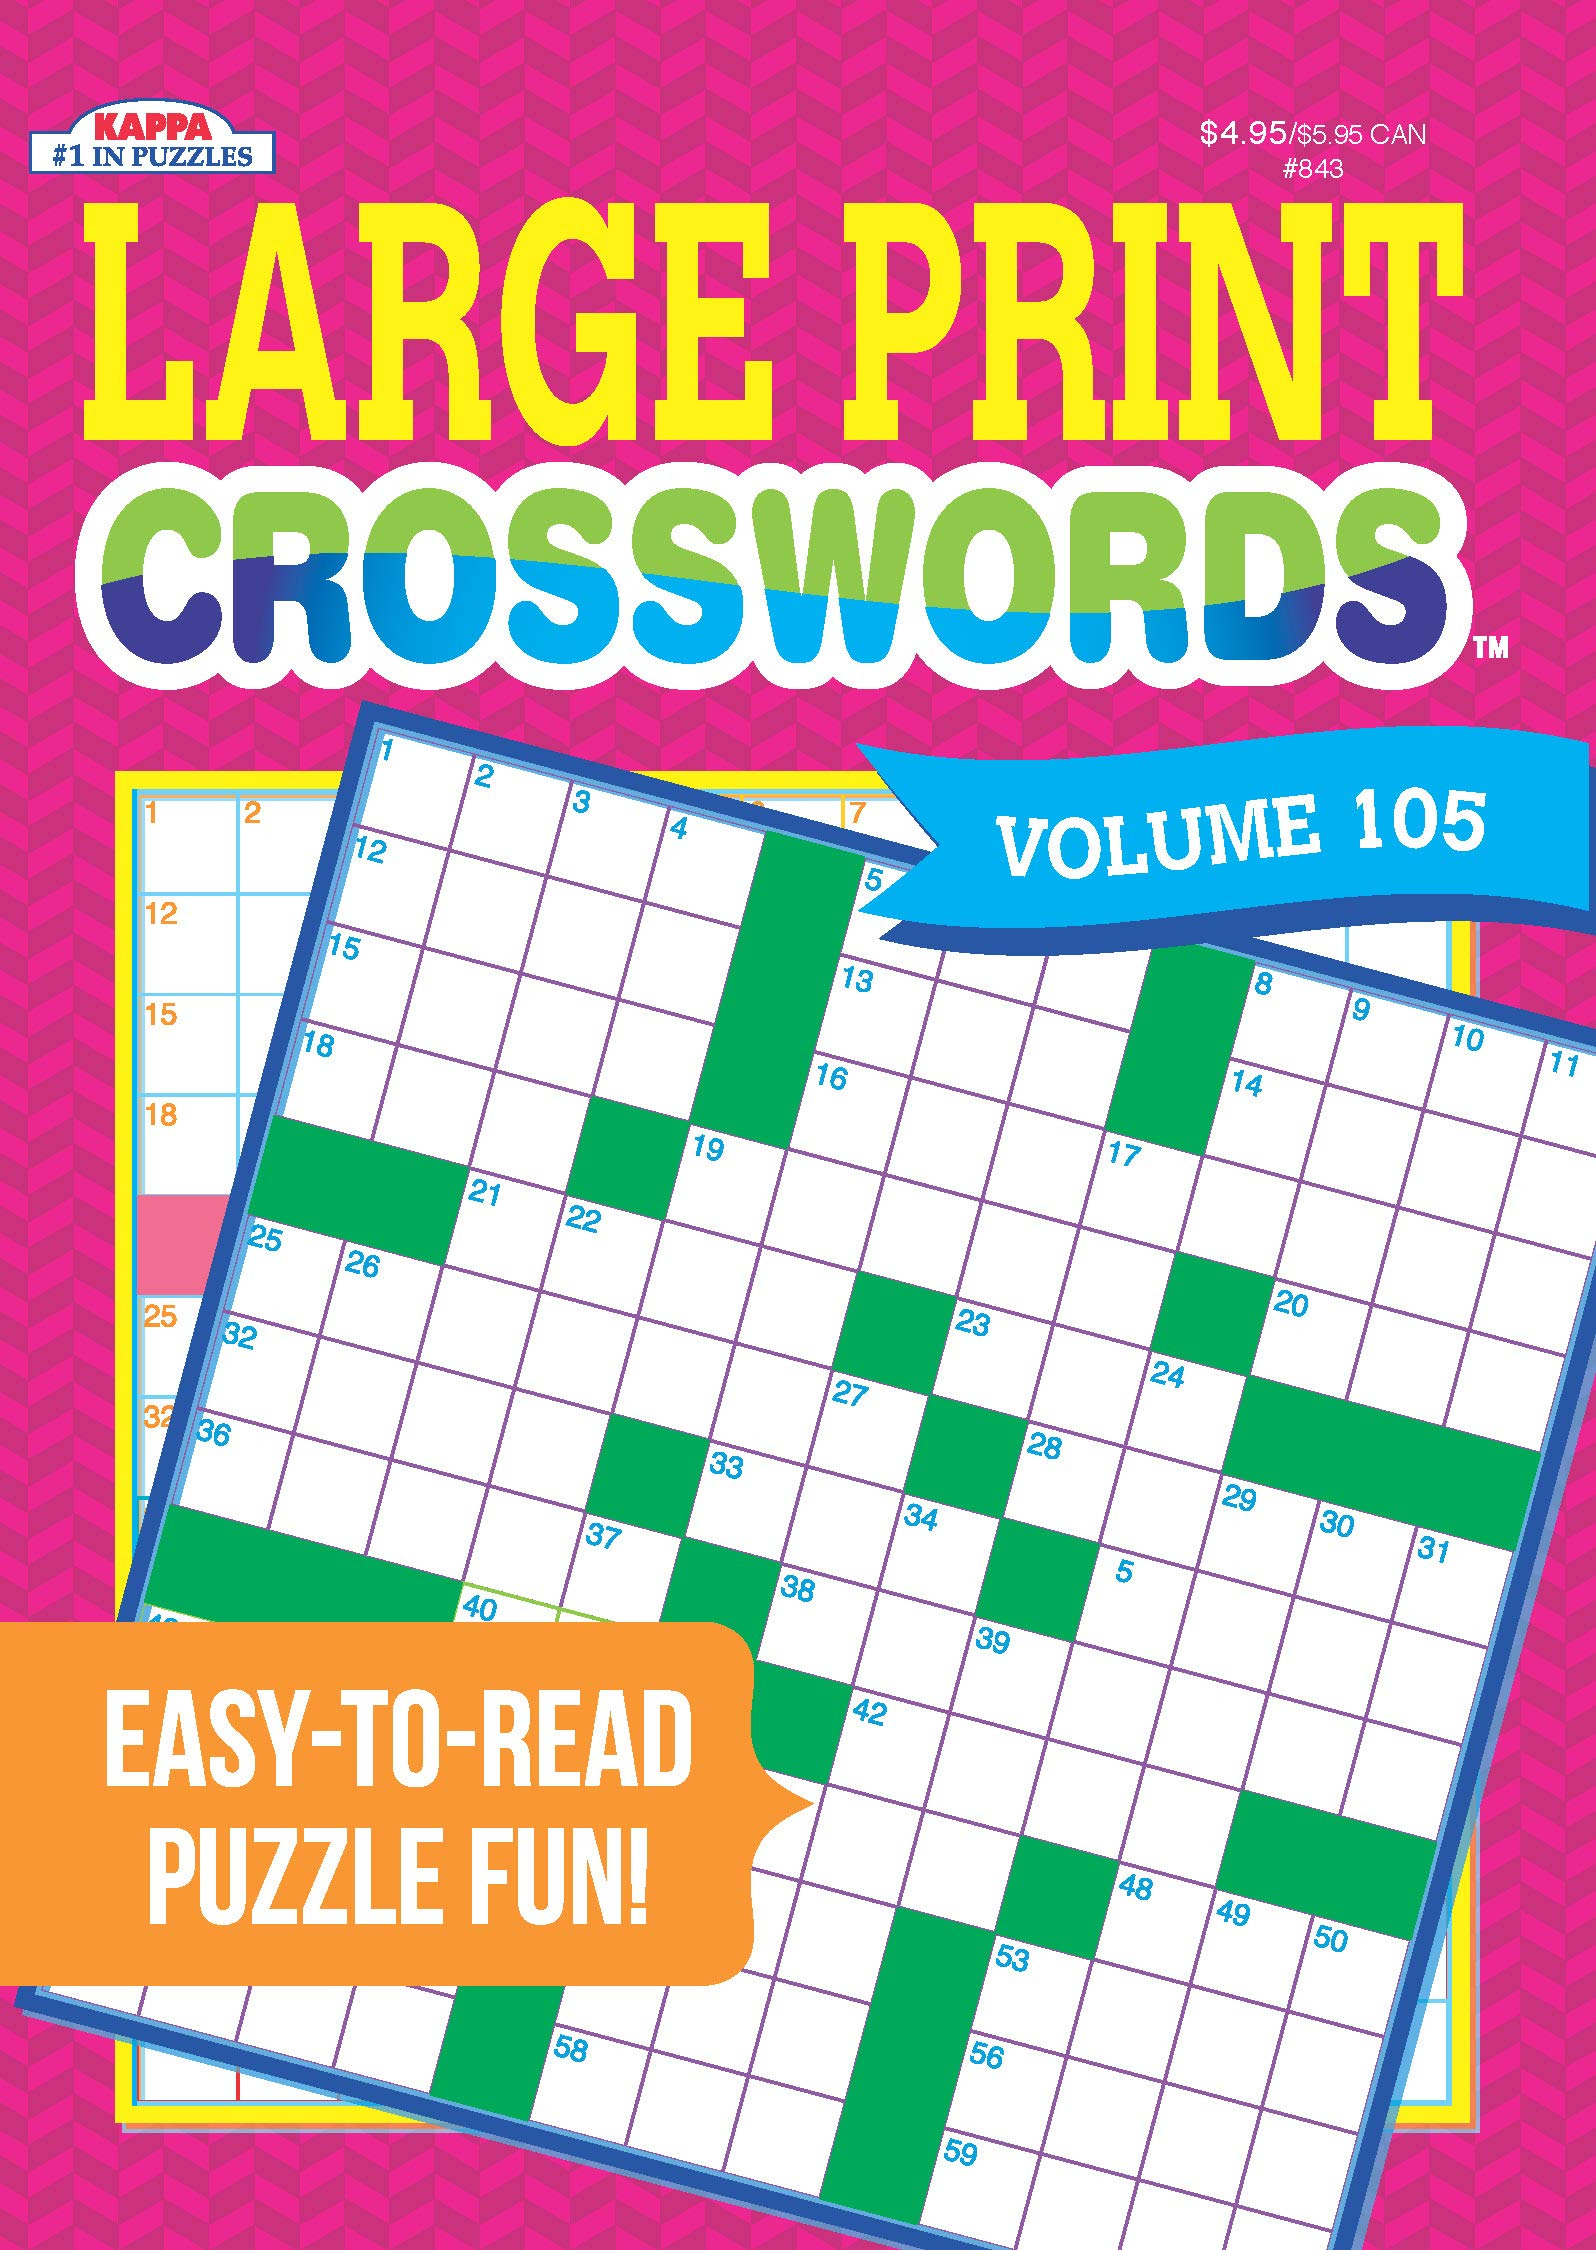 Coloring ~ Coloring Free Large Print Crosswords Easy For Seniors - Daily Crossword Puzzle Printable Thomas Joseph